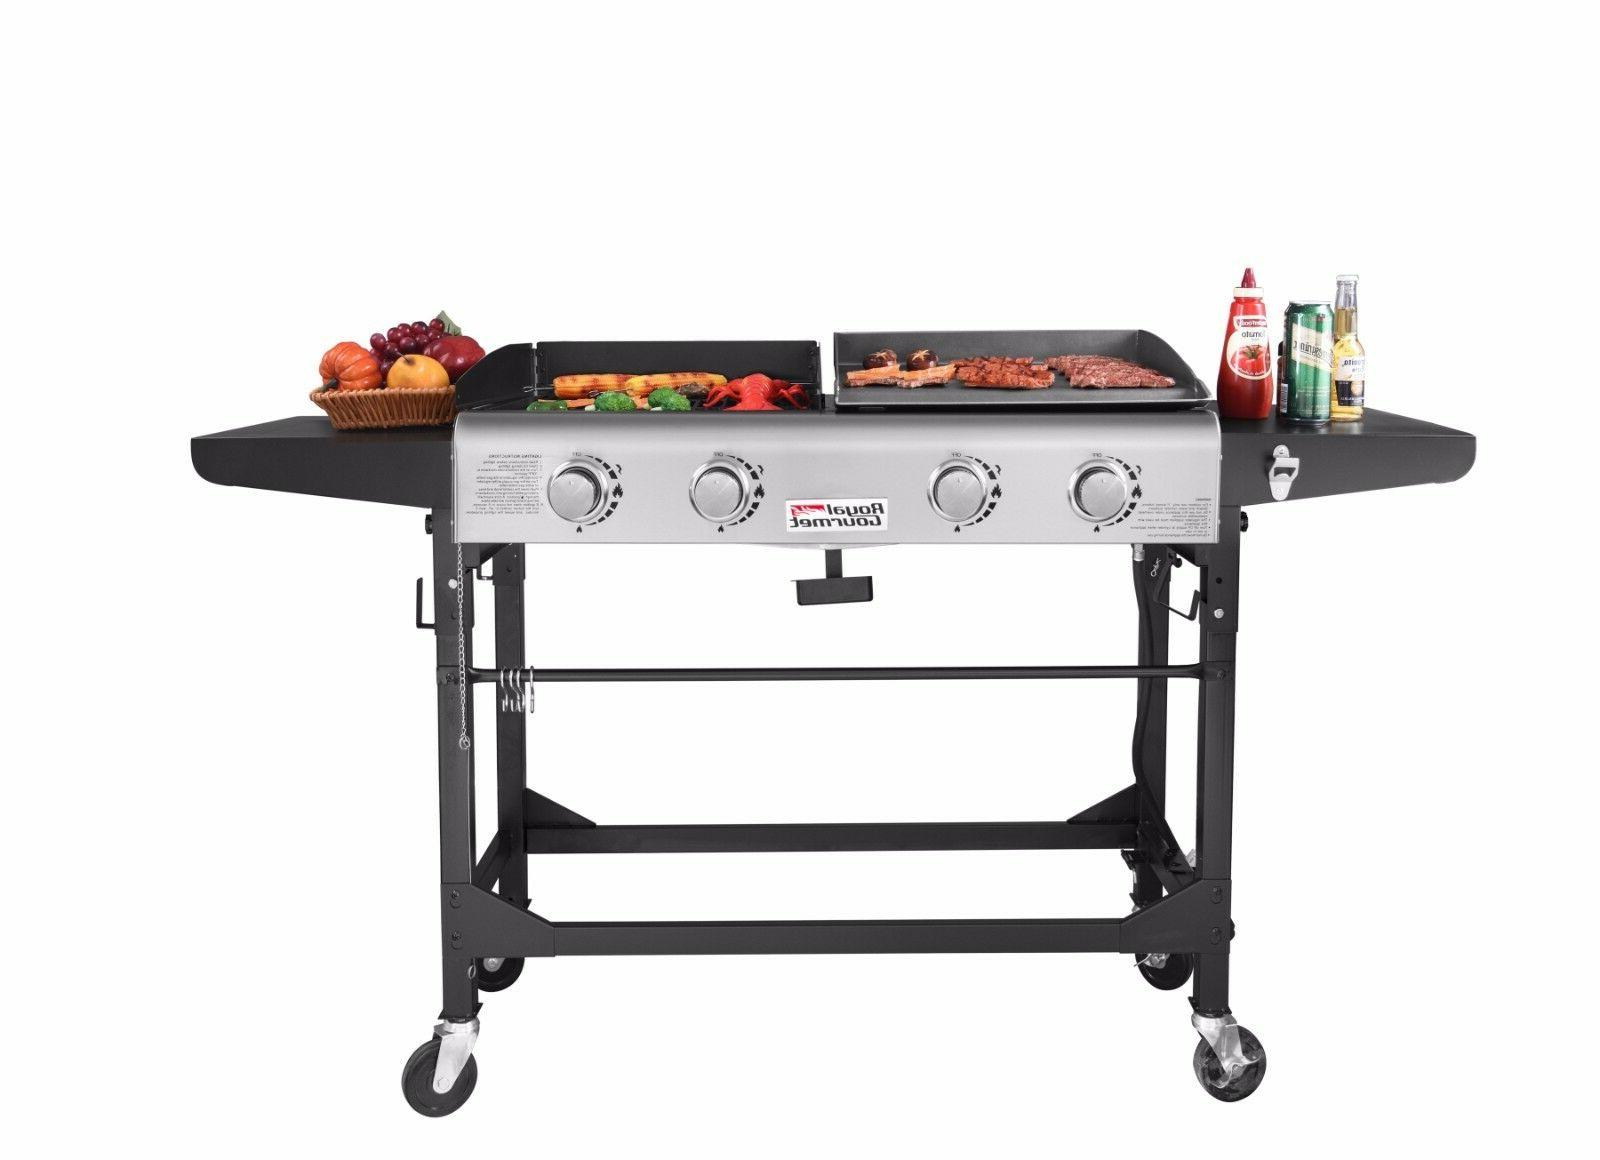 Royal Gourmet BBQ Griddle Camping GD401